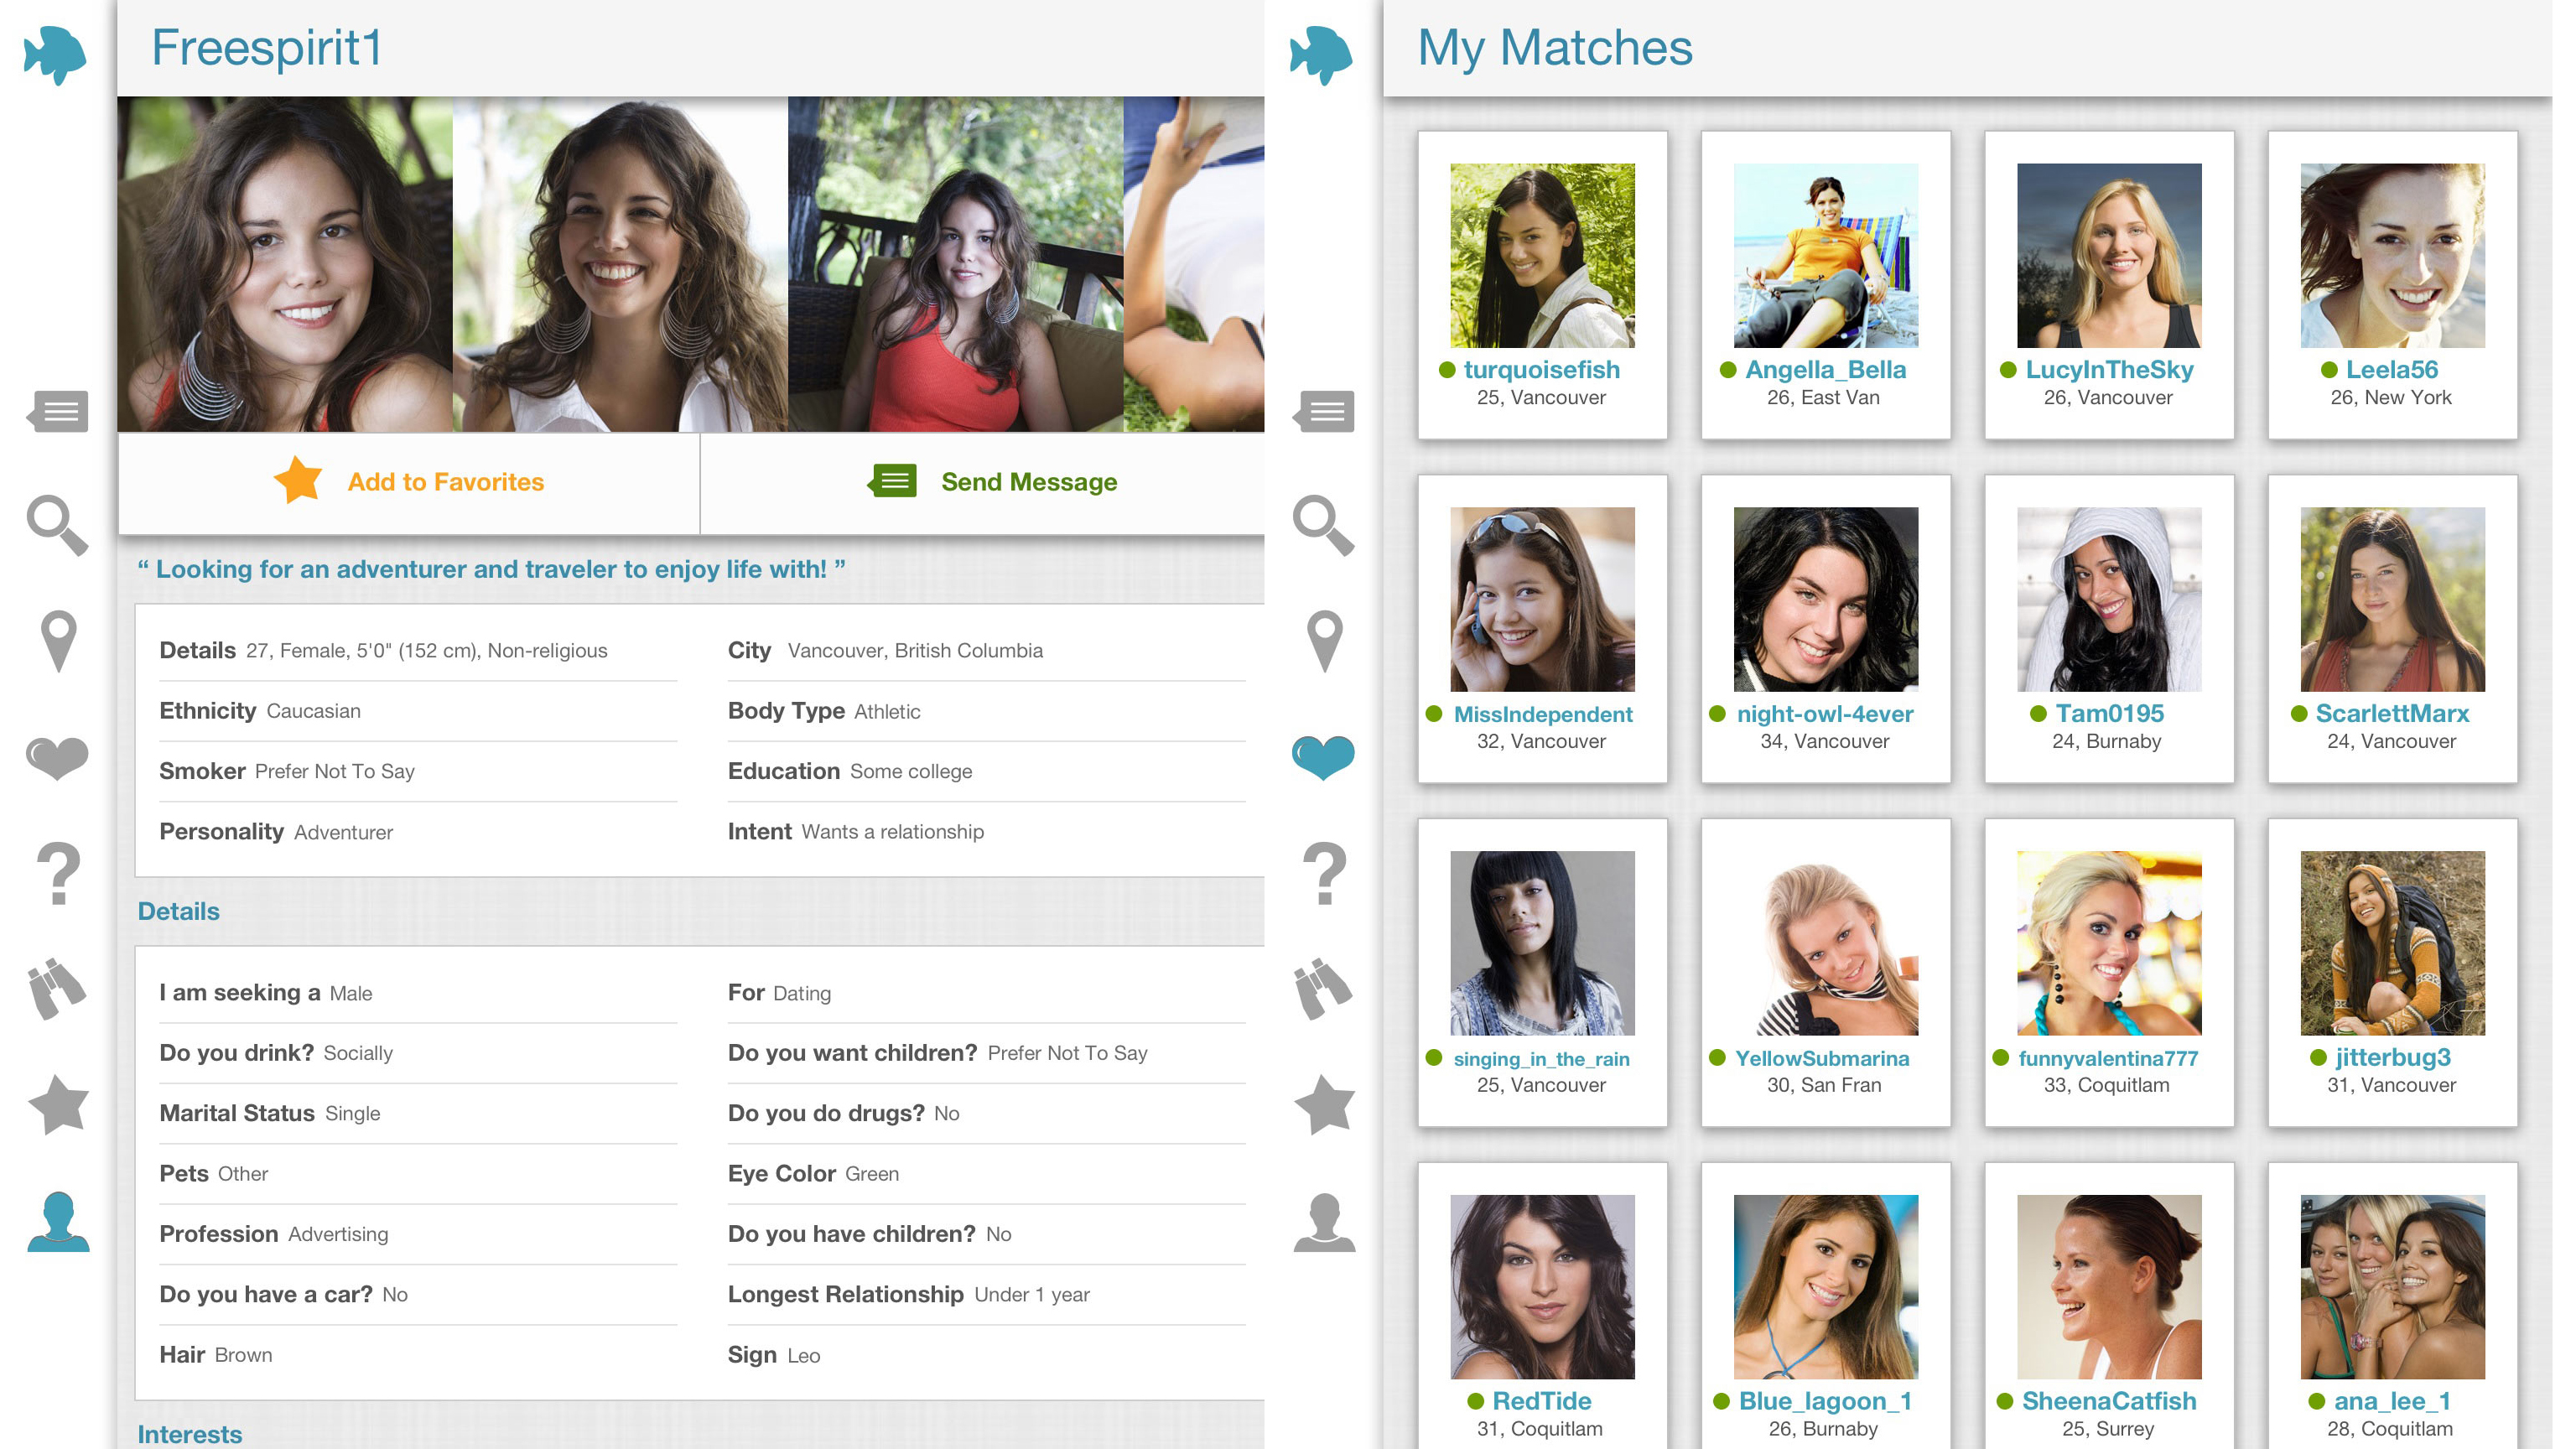 Online dating site list in Melbourne